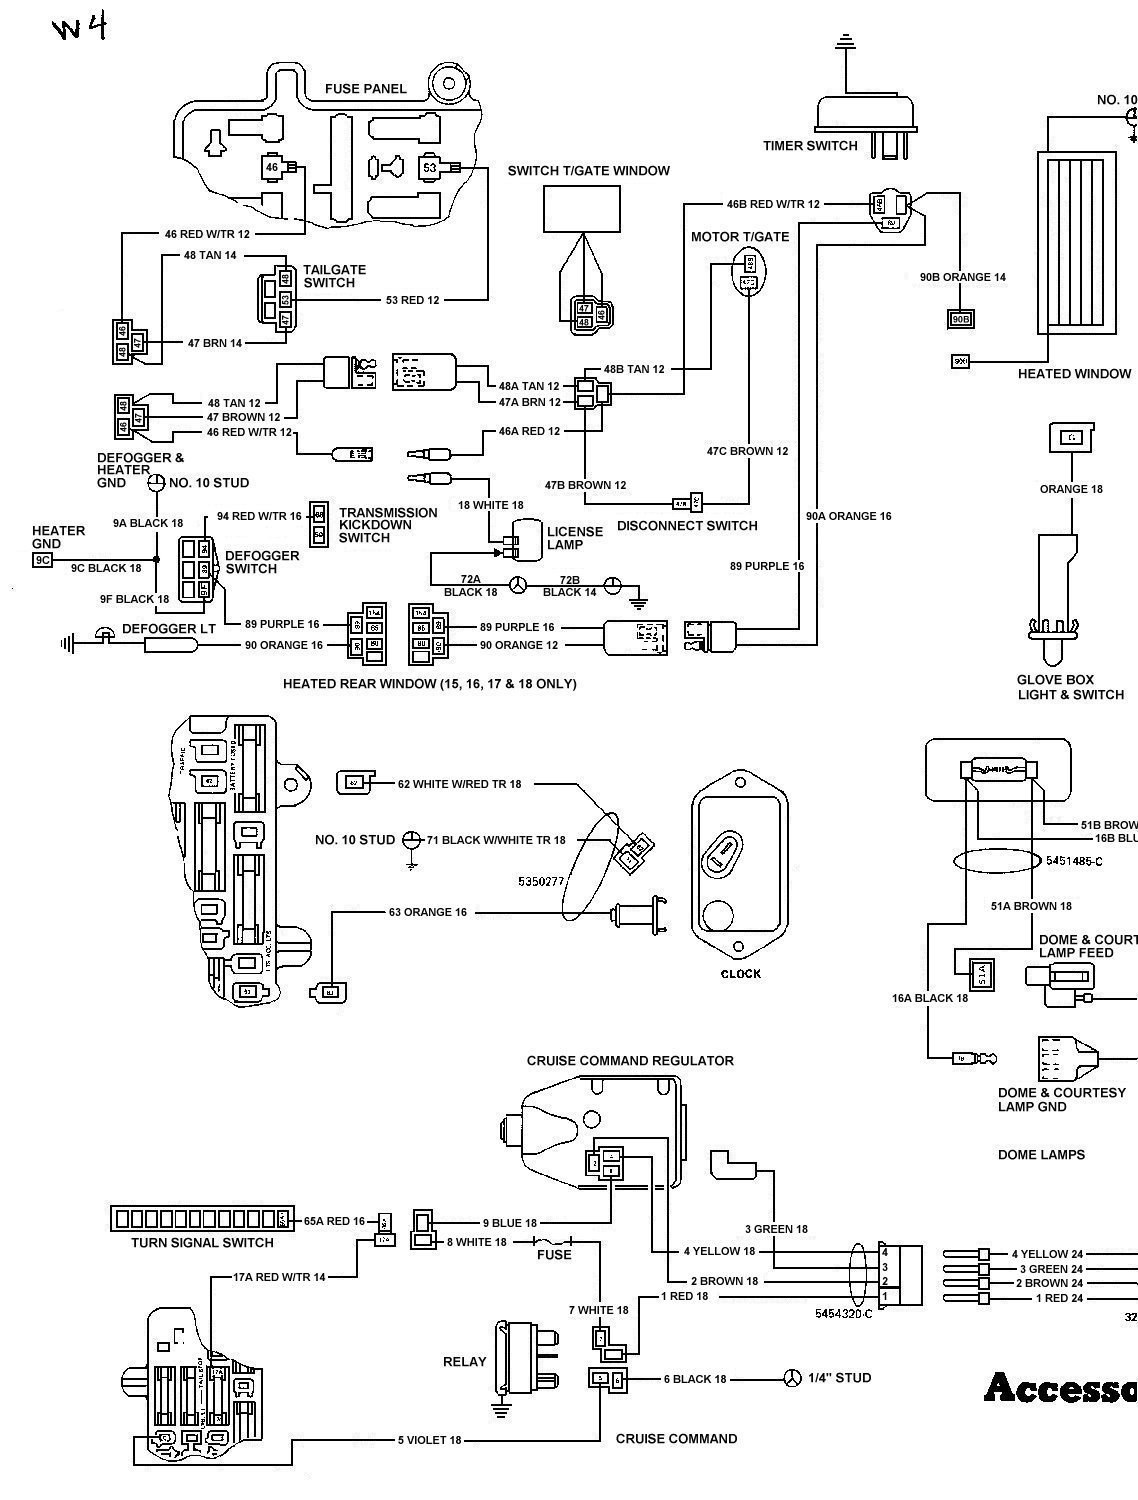 tom oljeep collins fsj wiring page rh oljeep com 1978 Jeep CJ7 Wiring-Diagram 1978 Jeep CJ7 Wiring-Diagram